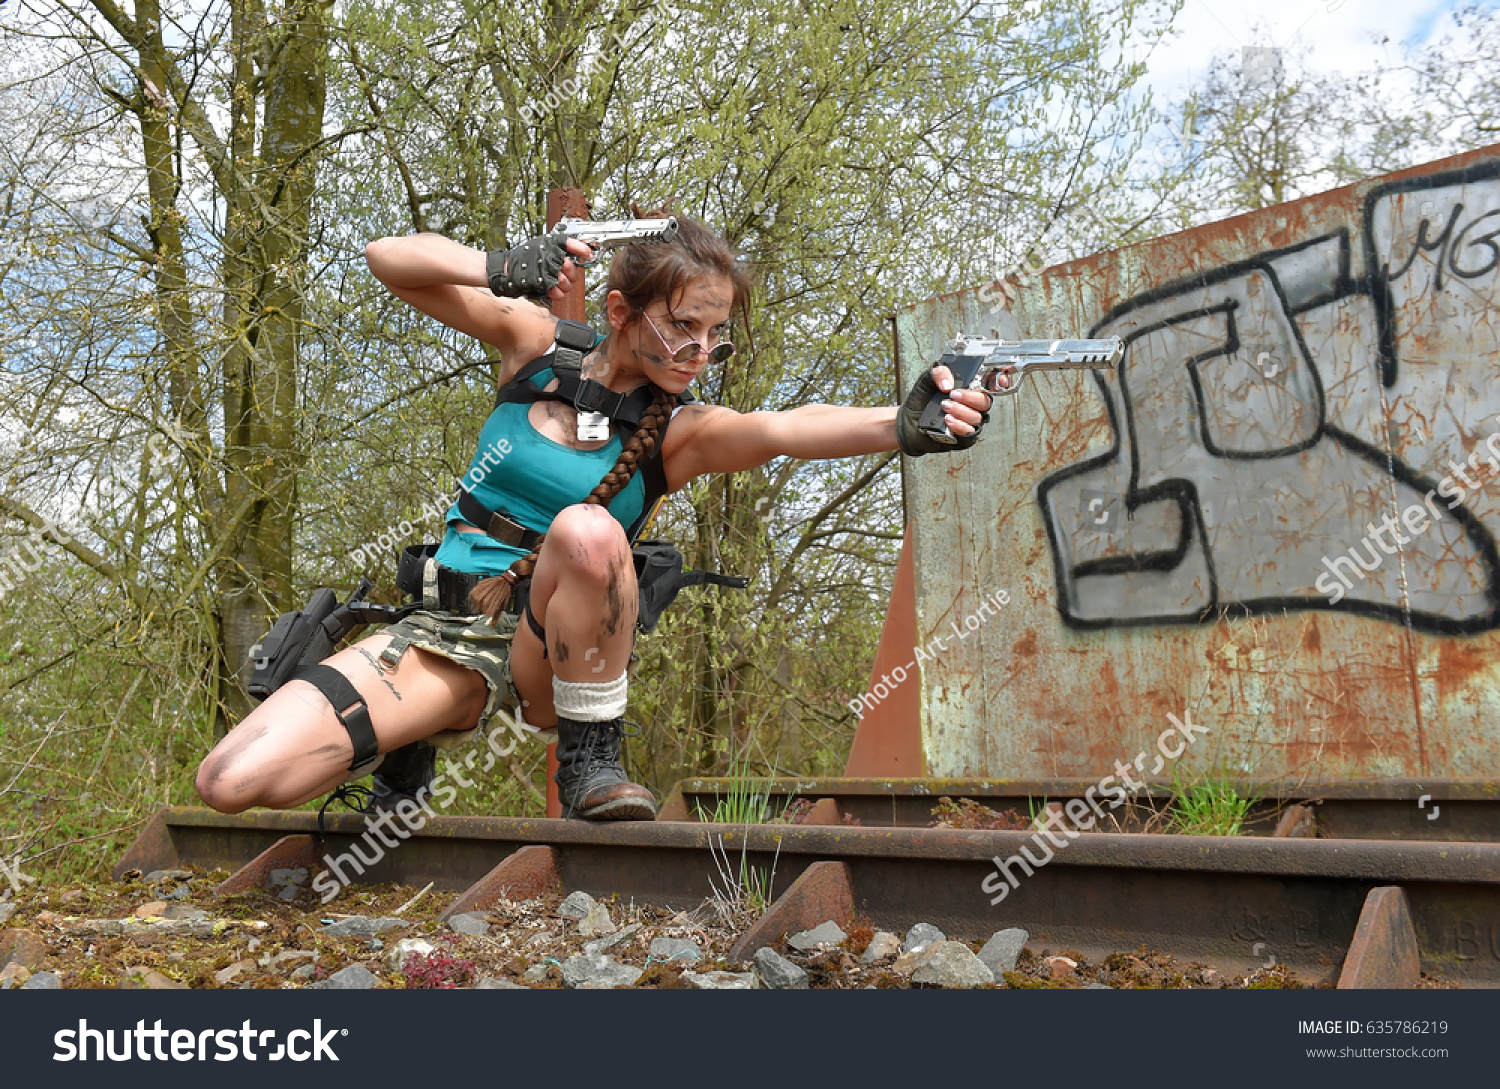 A young girl gets dressed up as a cosplay action woman. She poses outdoors  and